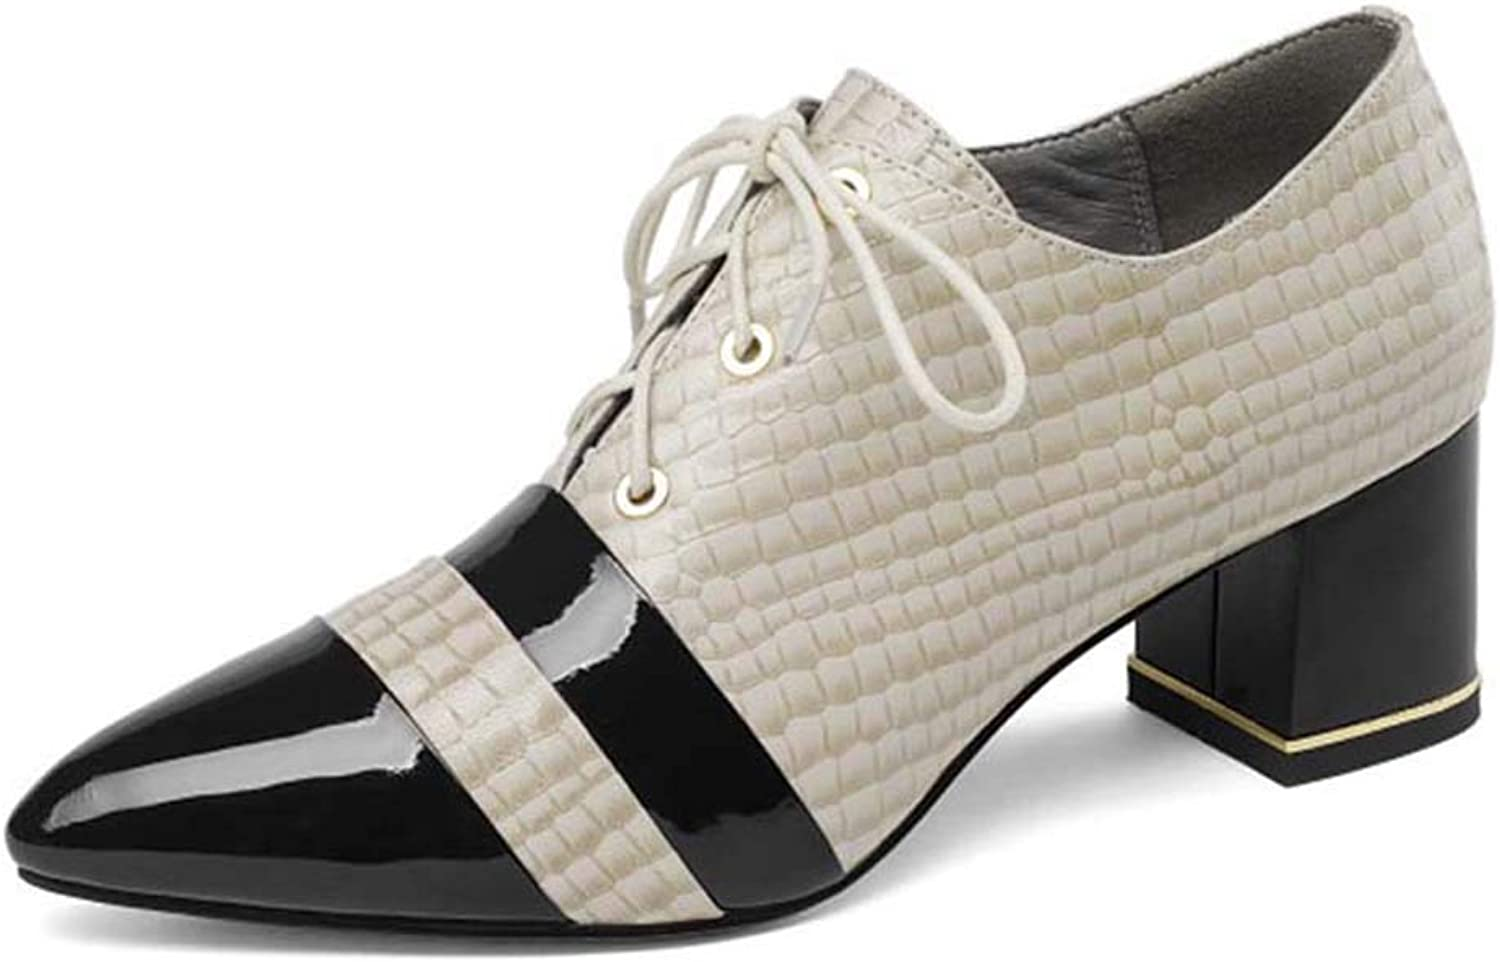 Women's Leather high Heels, Women's Single shoes with Thick and Low Heels, Comfortable and Breathable Wild Oxford shoes